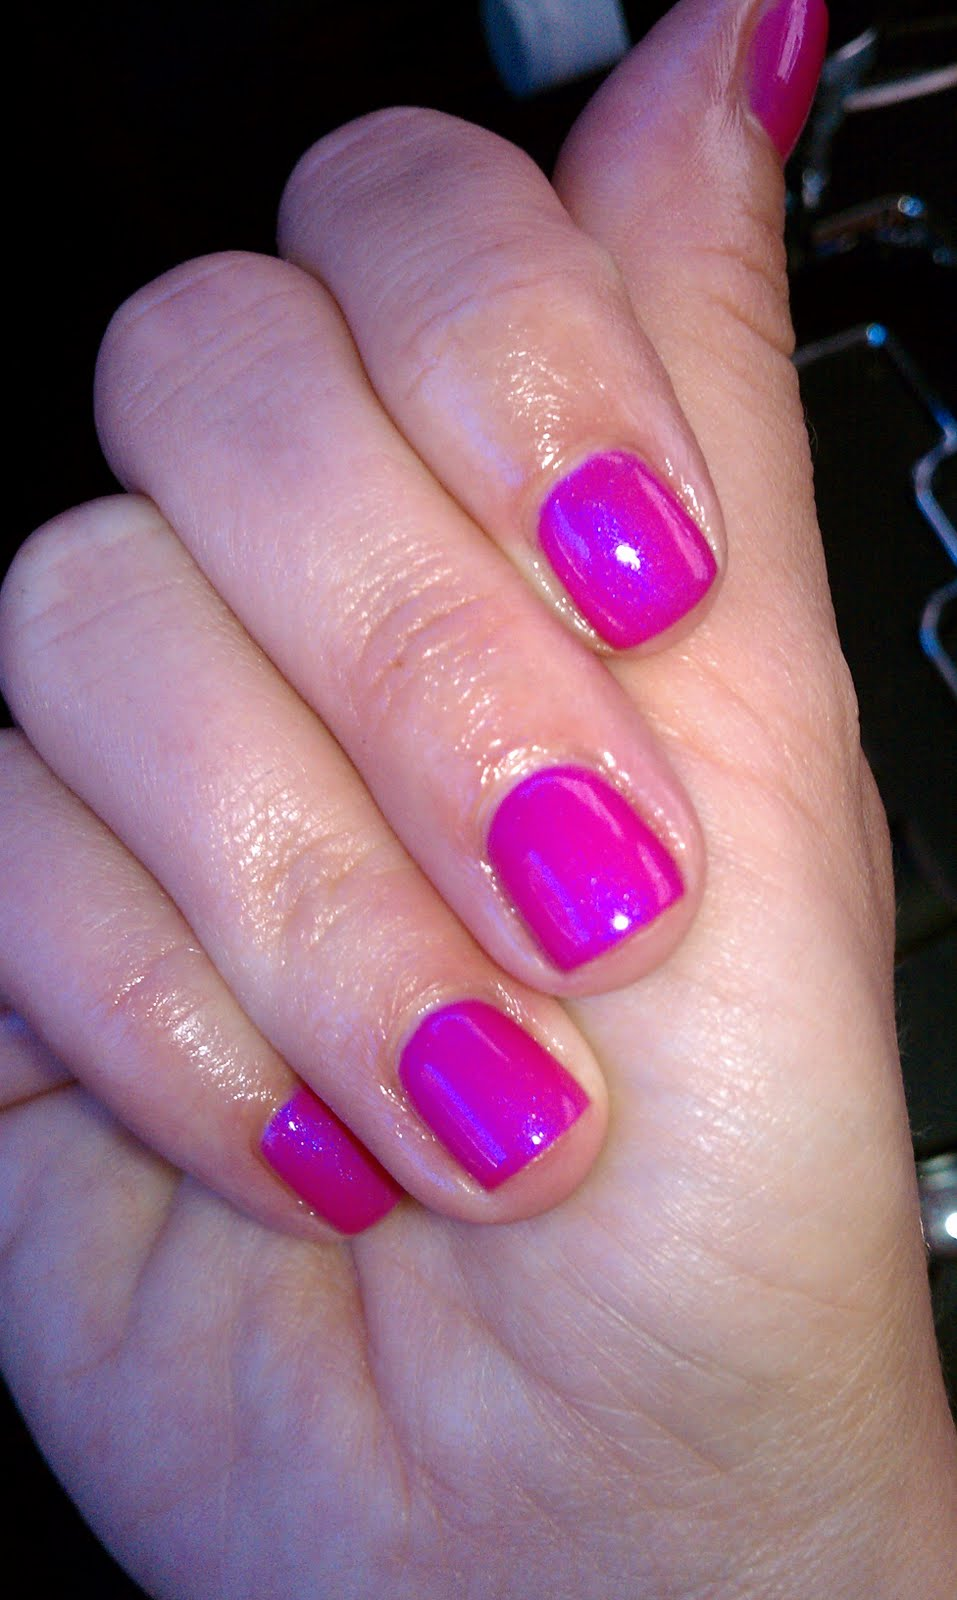 Lipgloss Break: CND Shellac nail polish